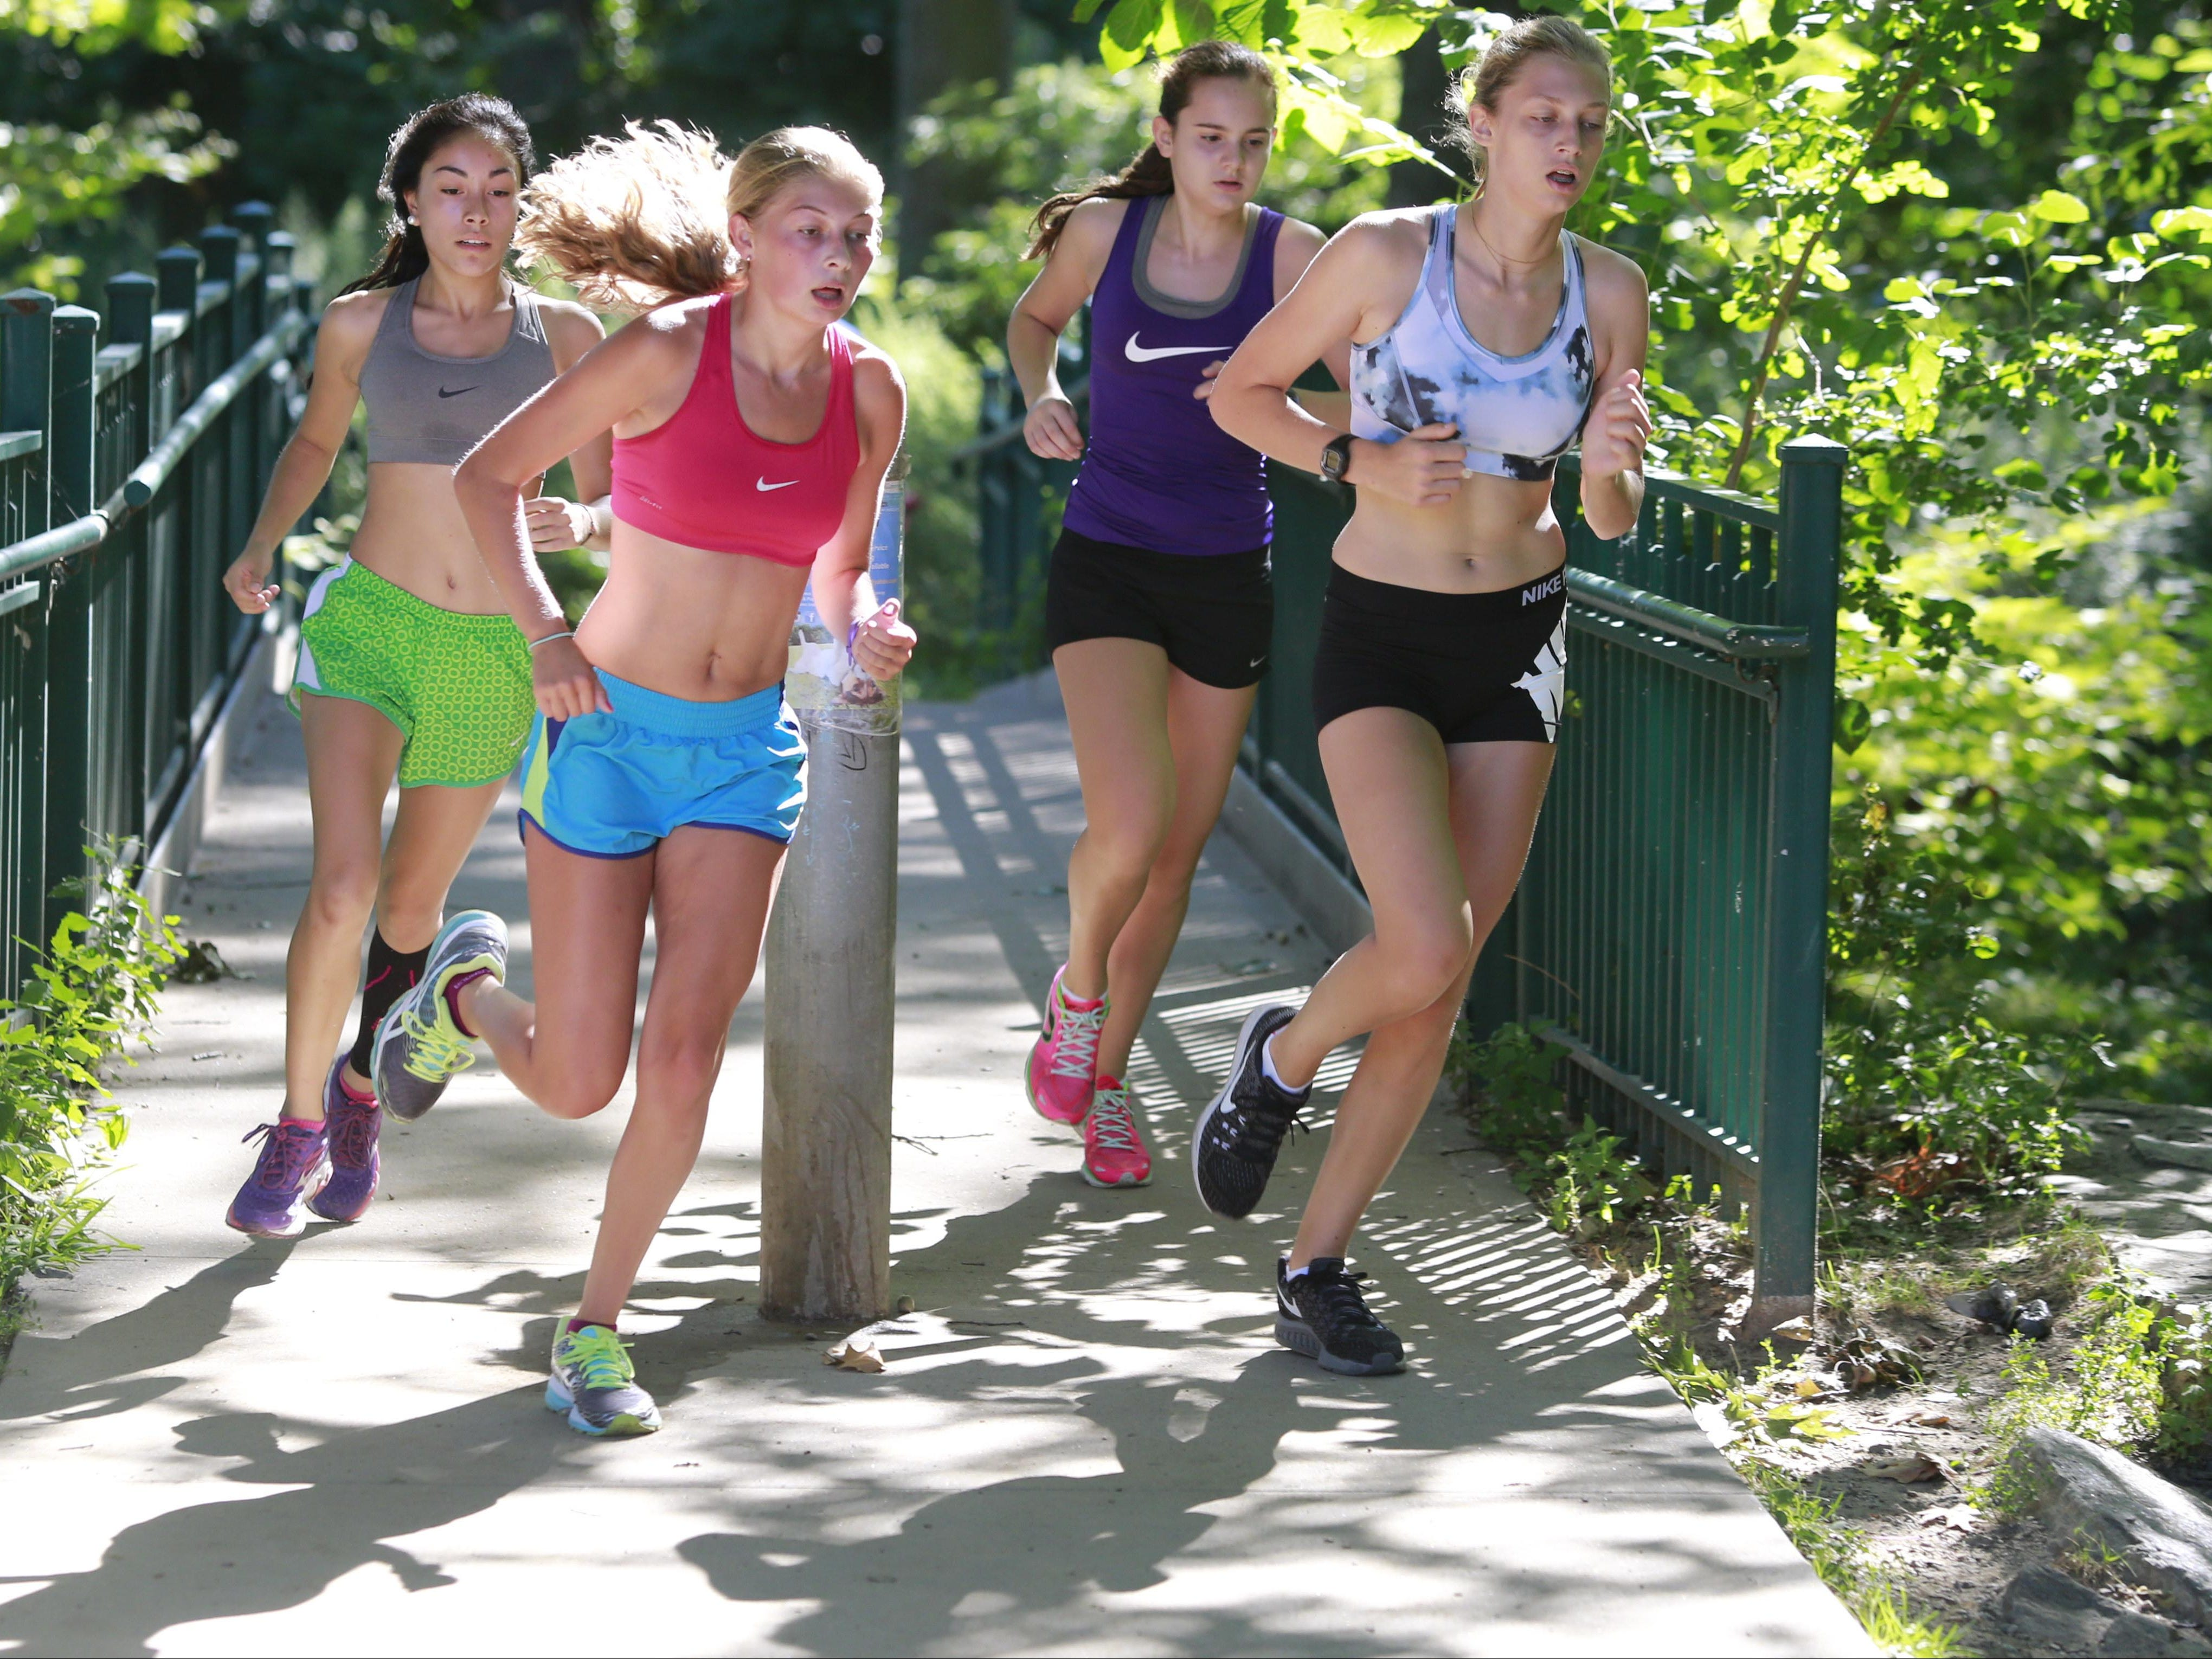 Members of the Bronxville Cross Country team train at Scout Field in Bronxville on Aug. 23, 2016.